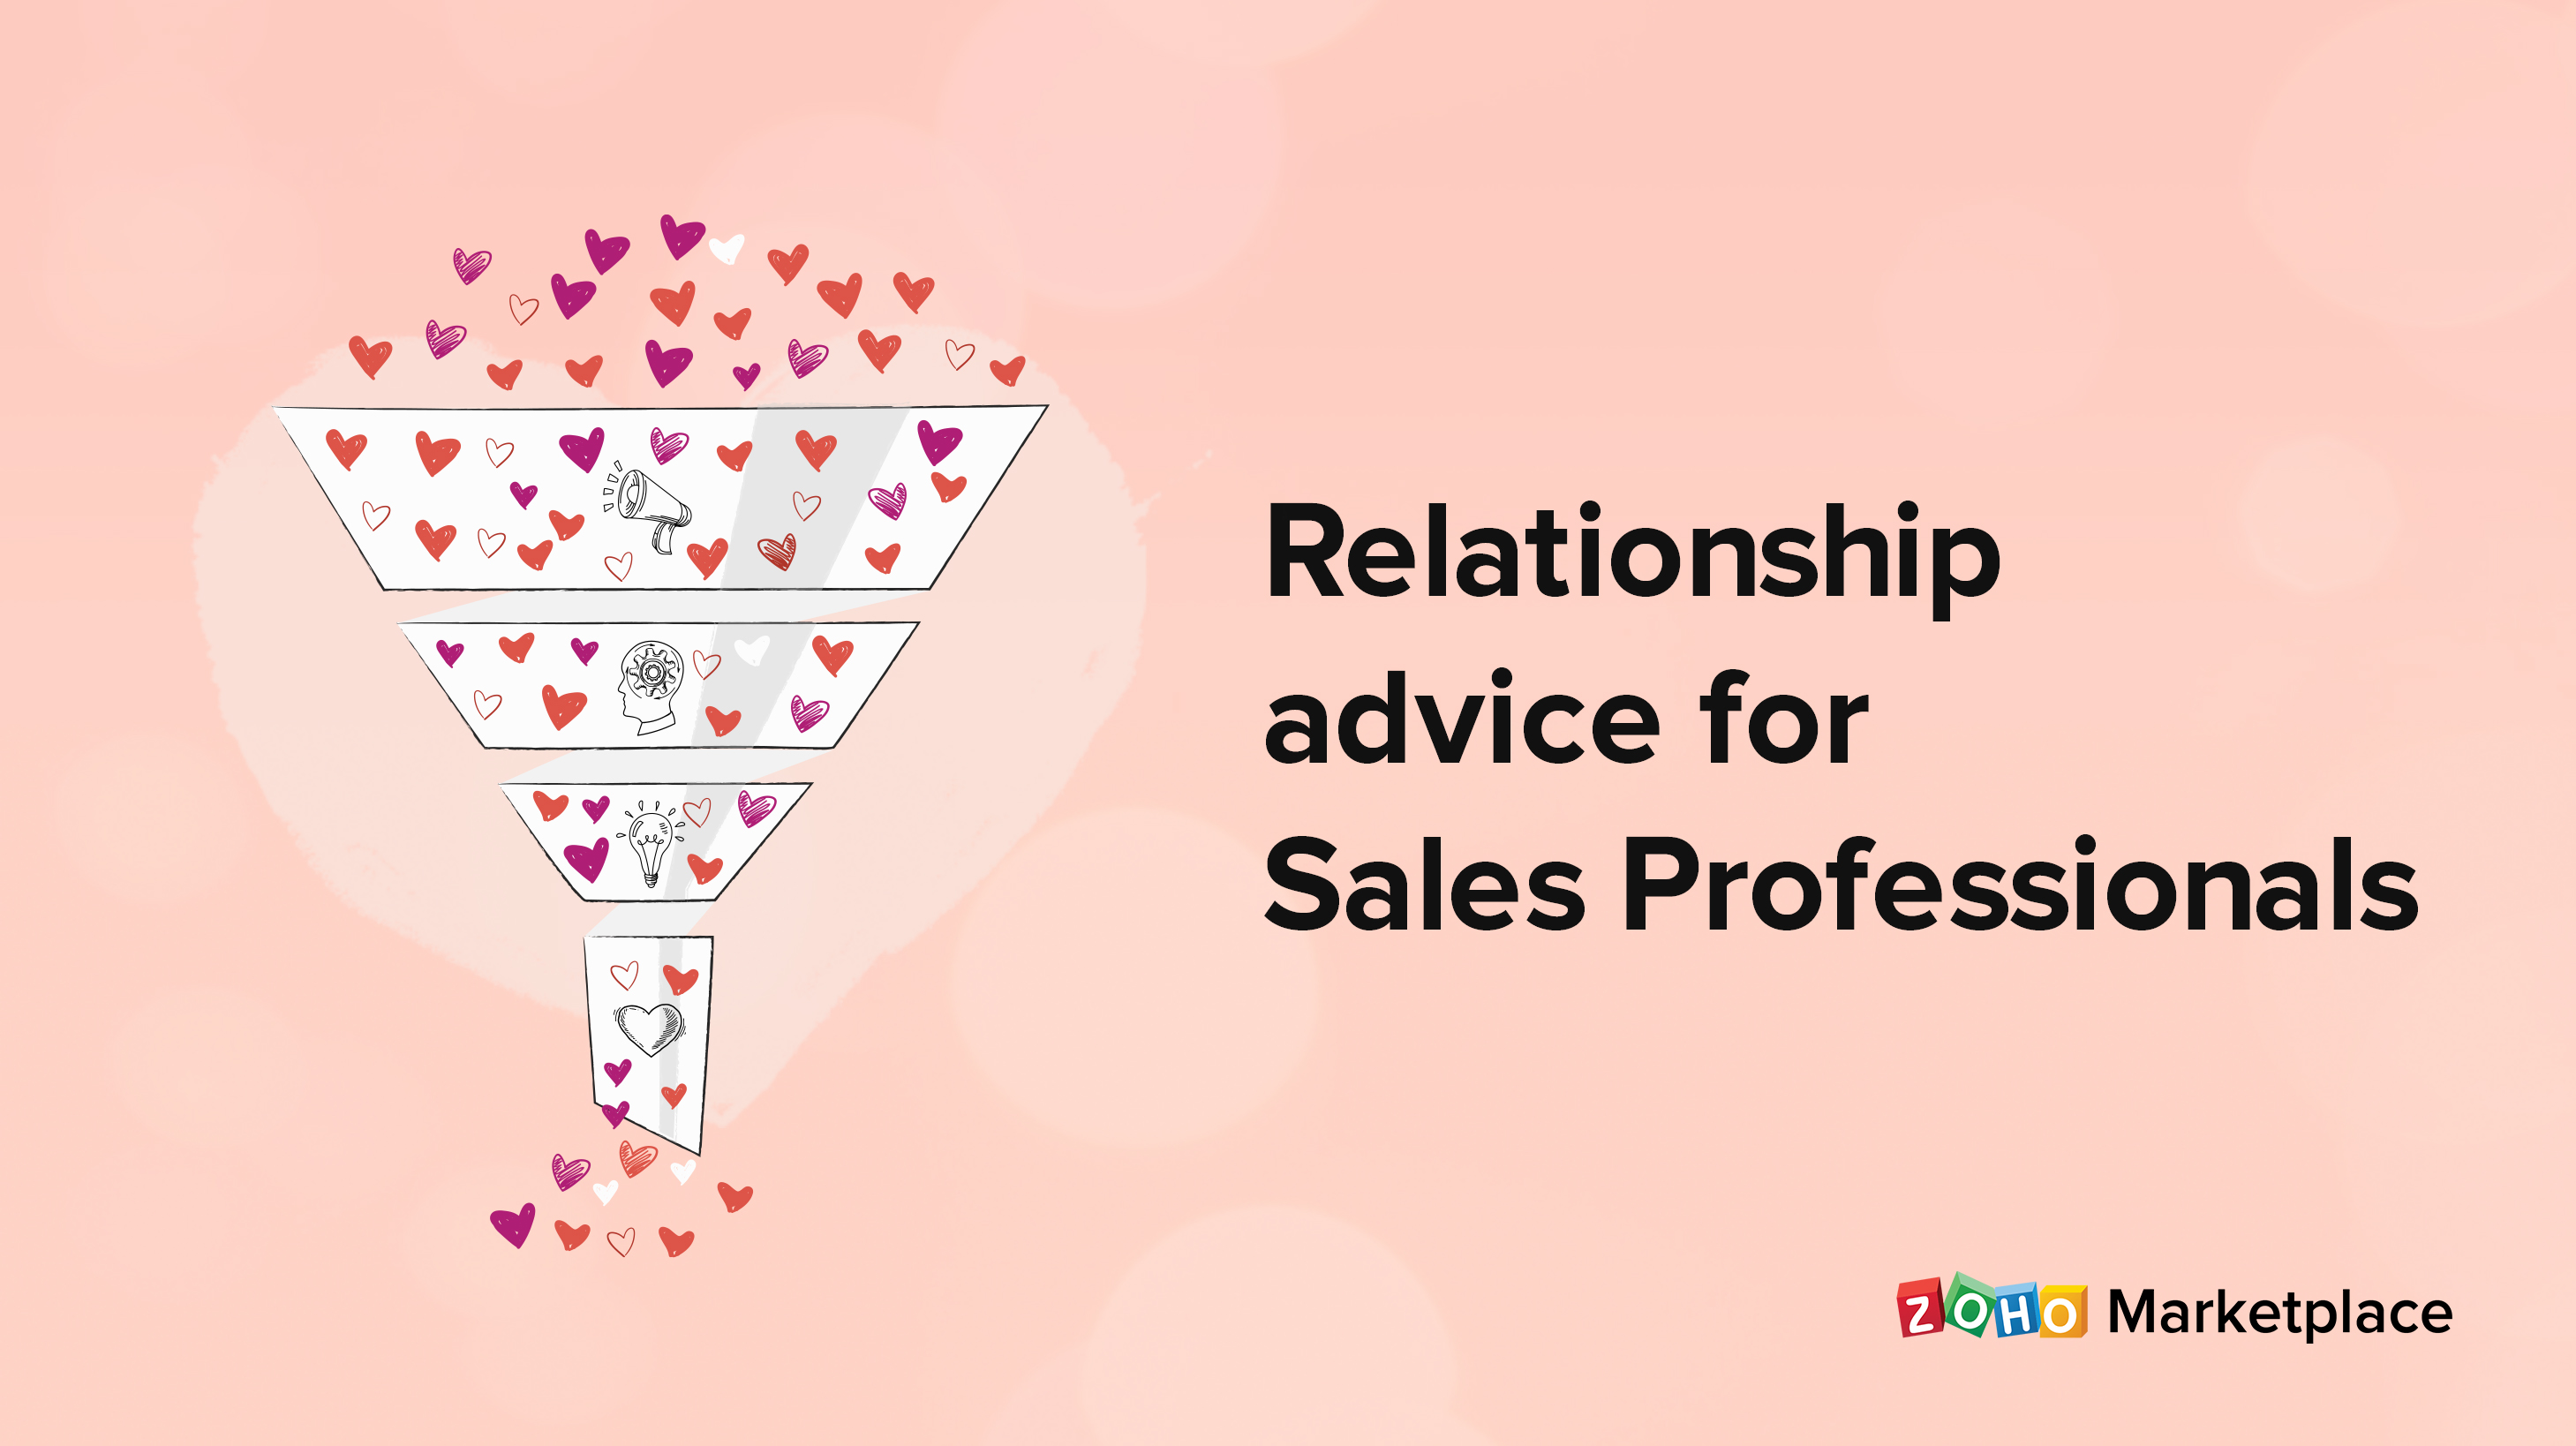 Relationship advice for Sales Professionals